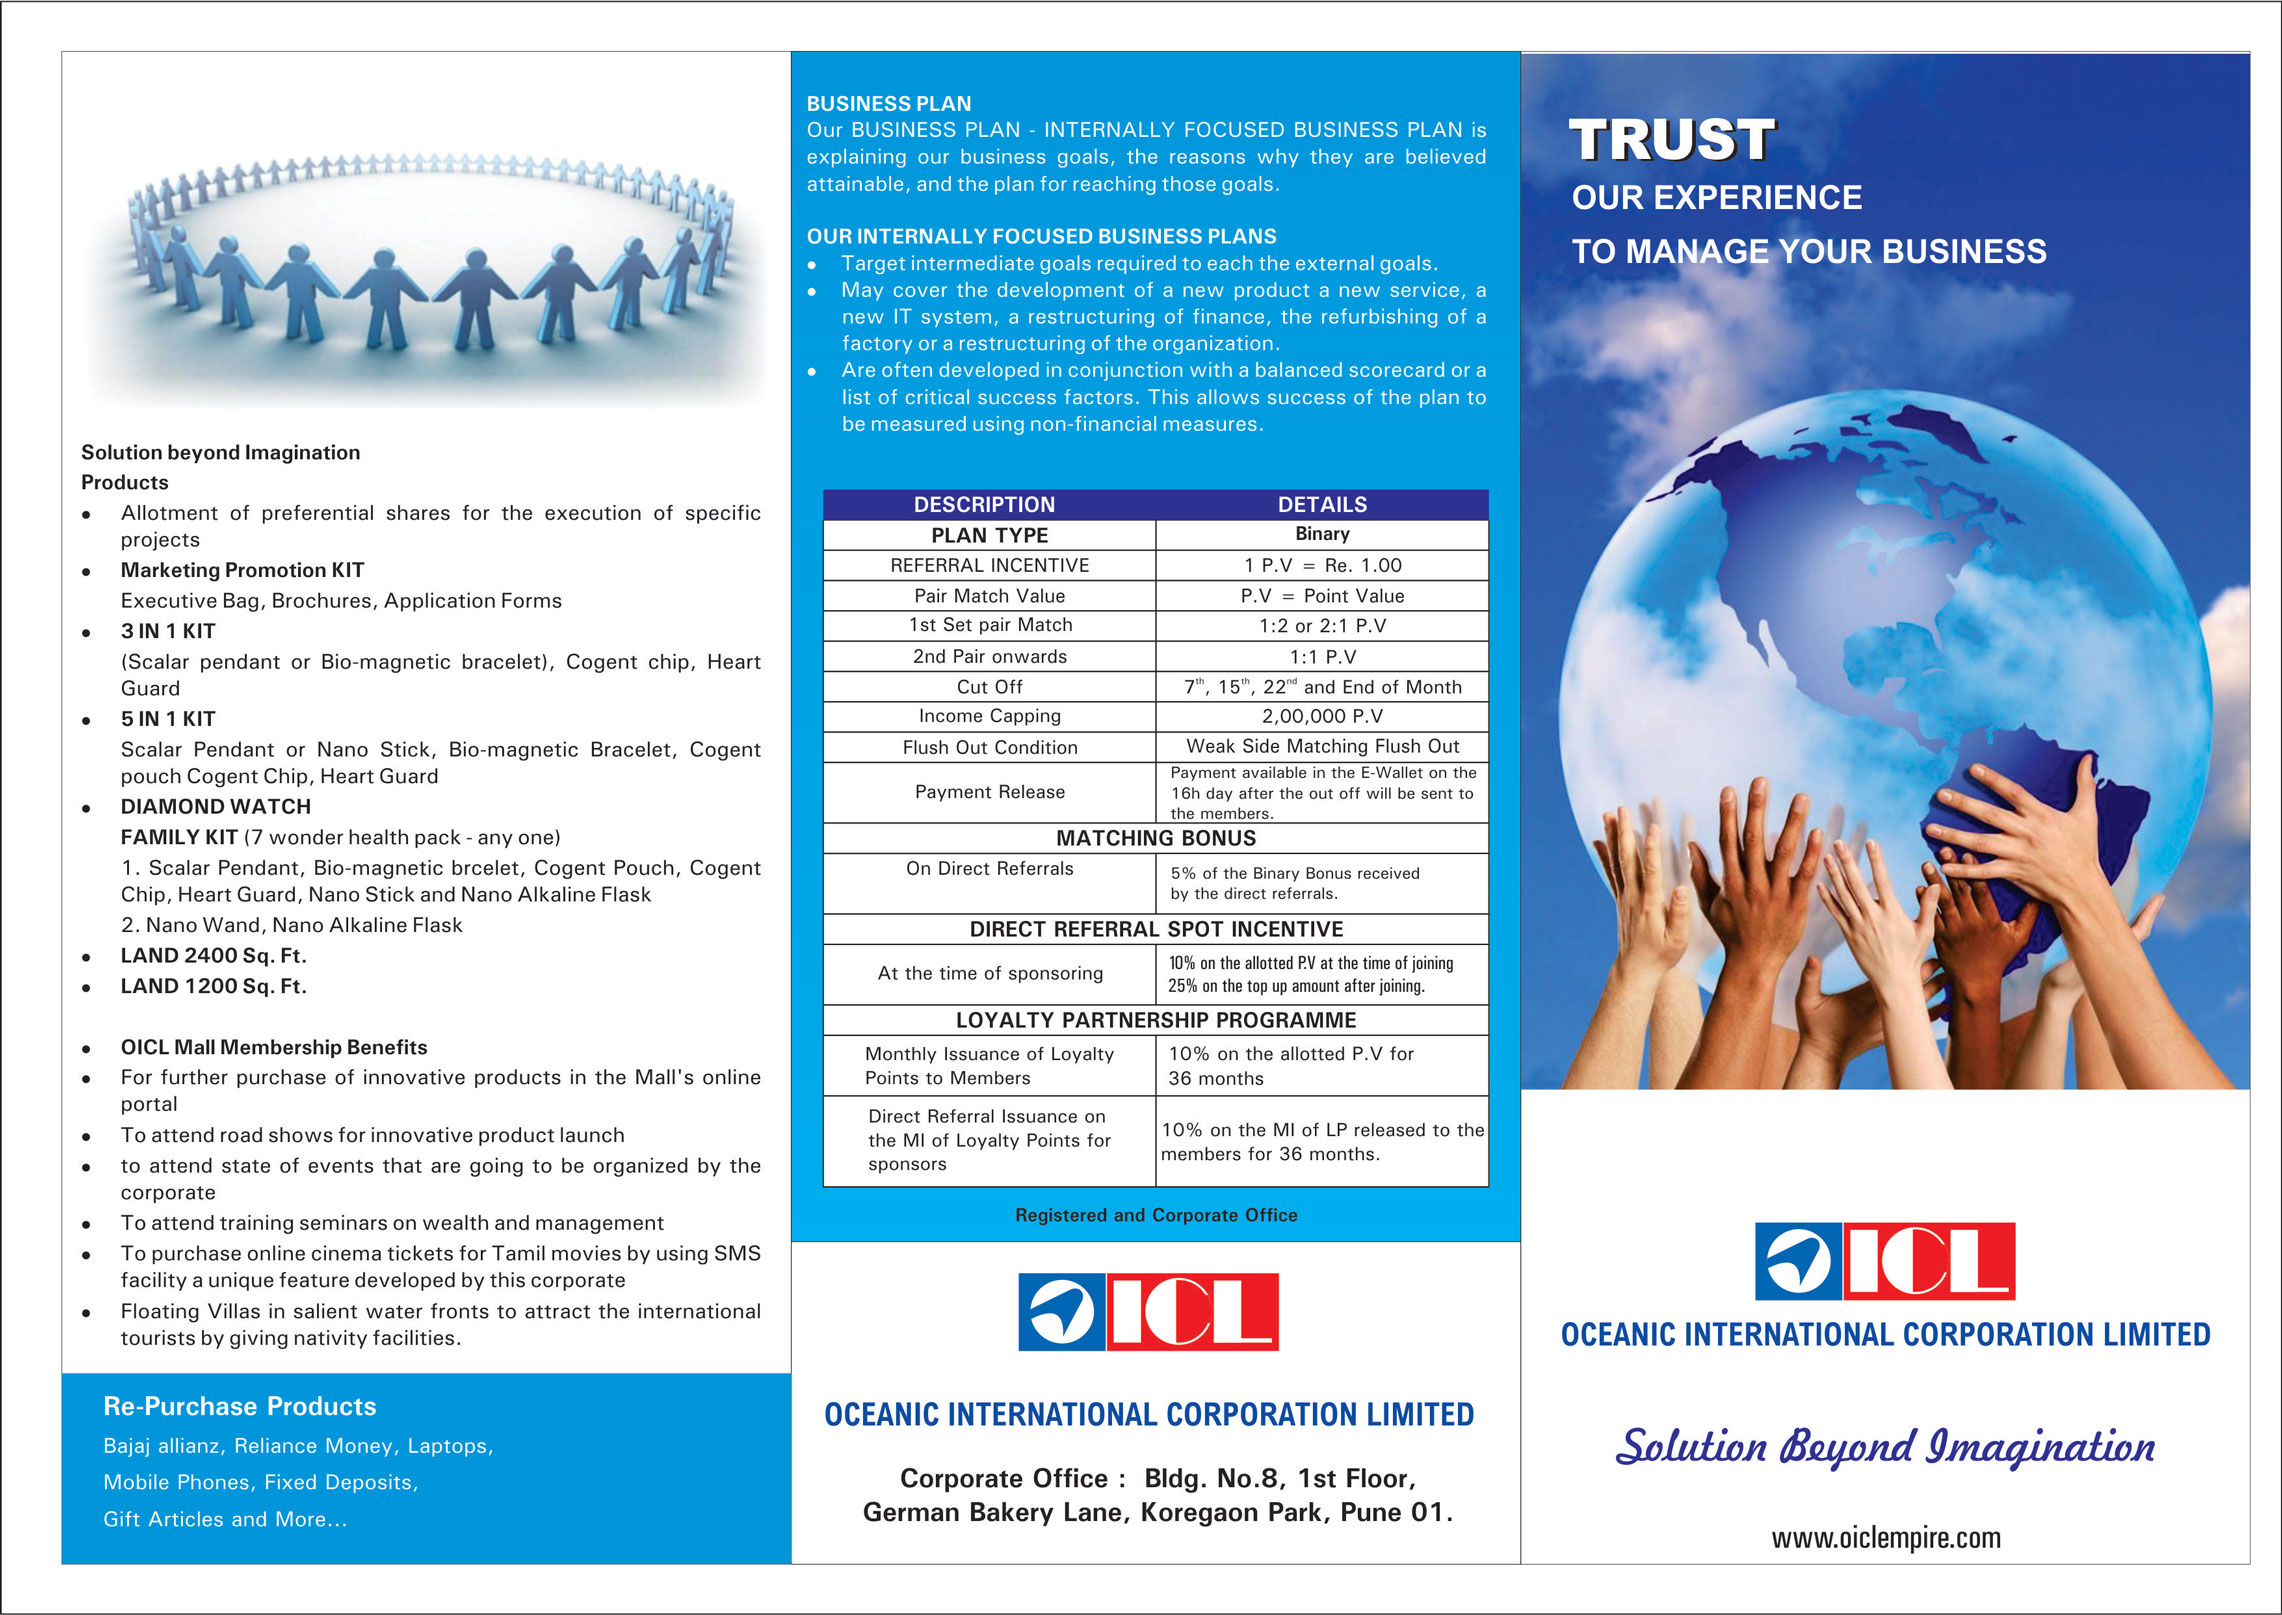 brochure-oceanic-international-corporation-oicl-business-graphic-design-front